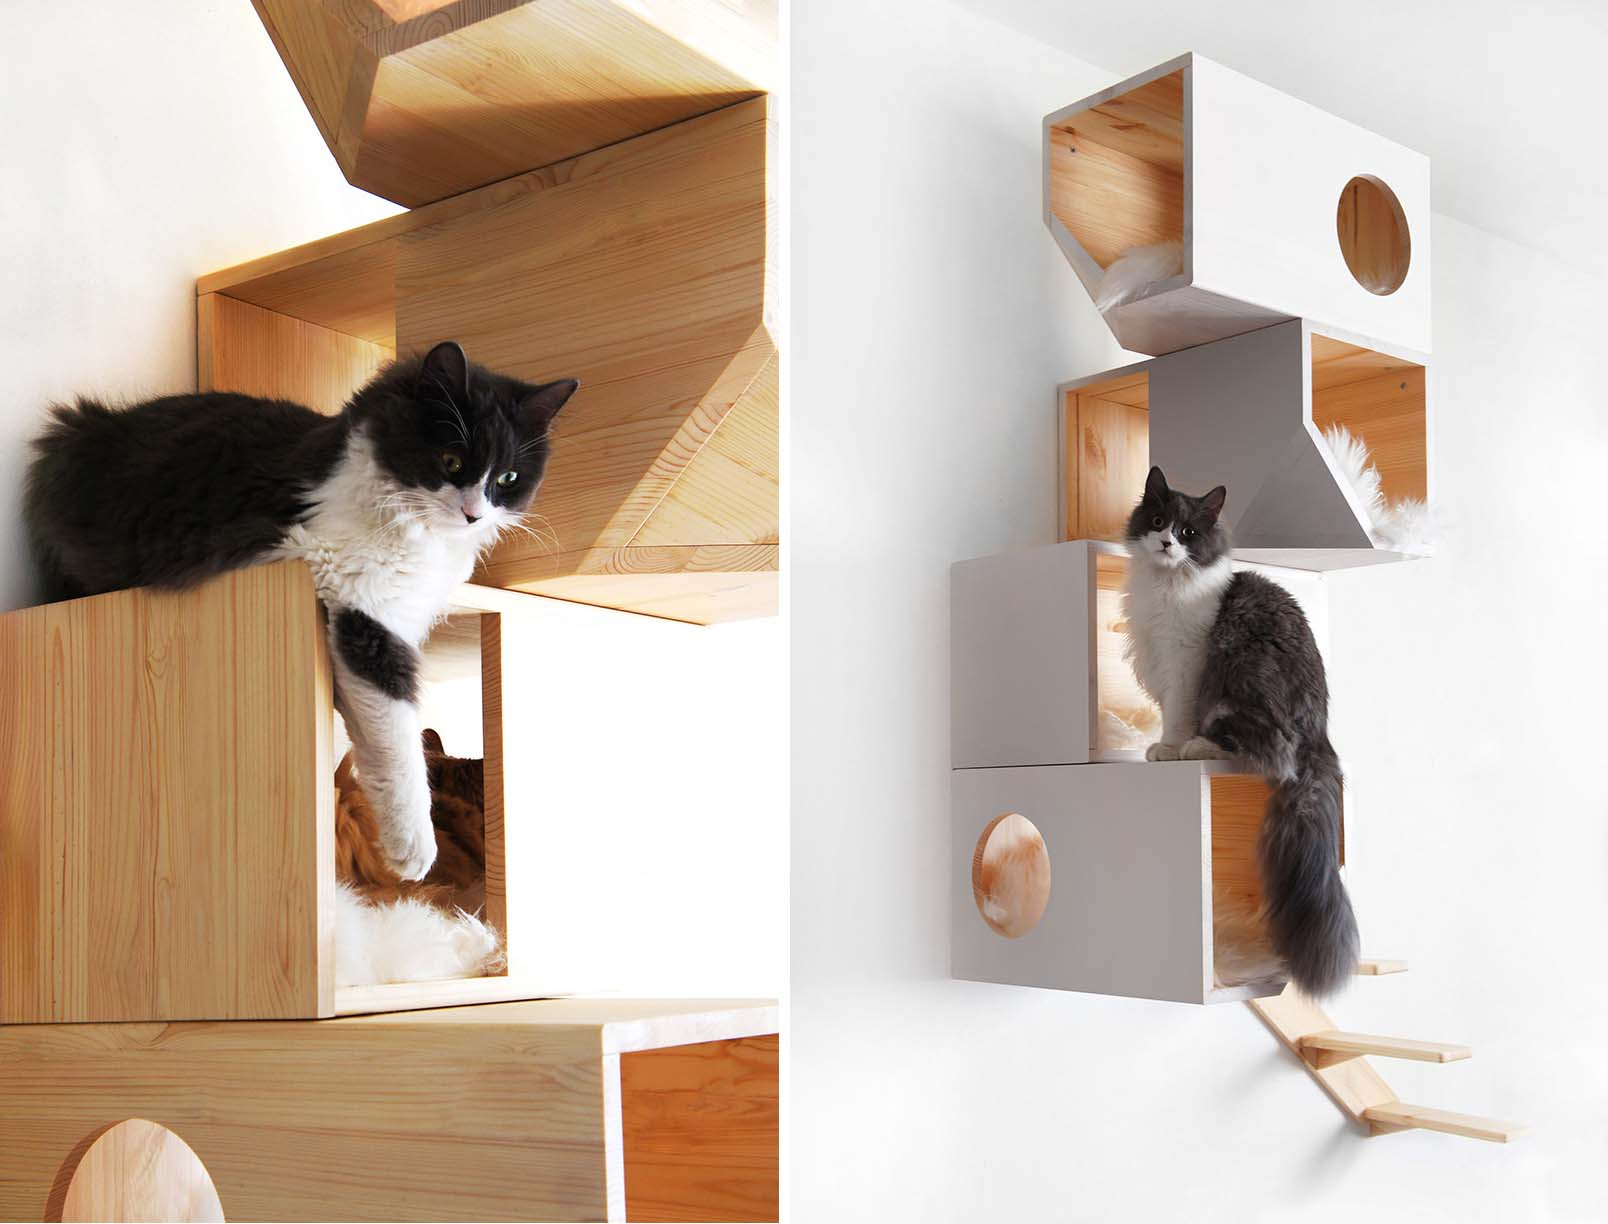 innovative modern cat furniture | Catissa Cat Tree Doubles As Stylish Wall Art | 6sqft